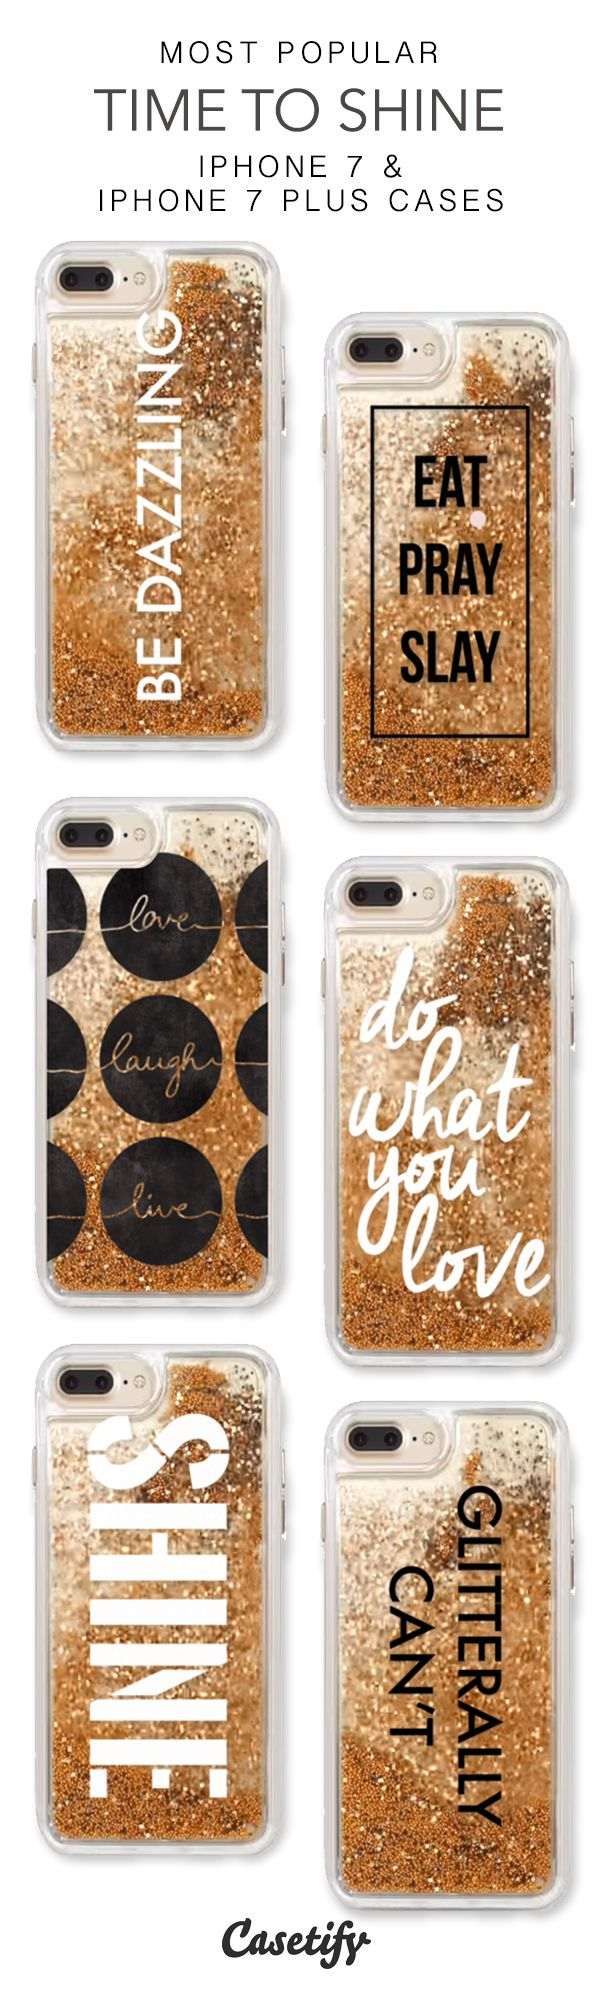 Most Popular Time To Shine iPhone 7 Cases & iPhone 7 Plus Cases. More glitter iPhone case here > https://www.casetify.com/en_US/collections/iphone-7-glitter-cases#/?vc=l71mrMBQxC